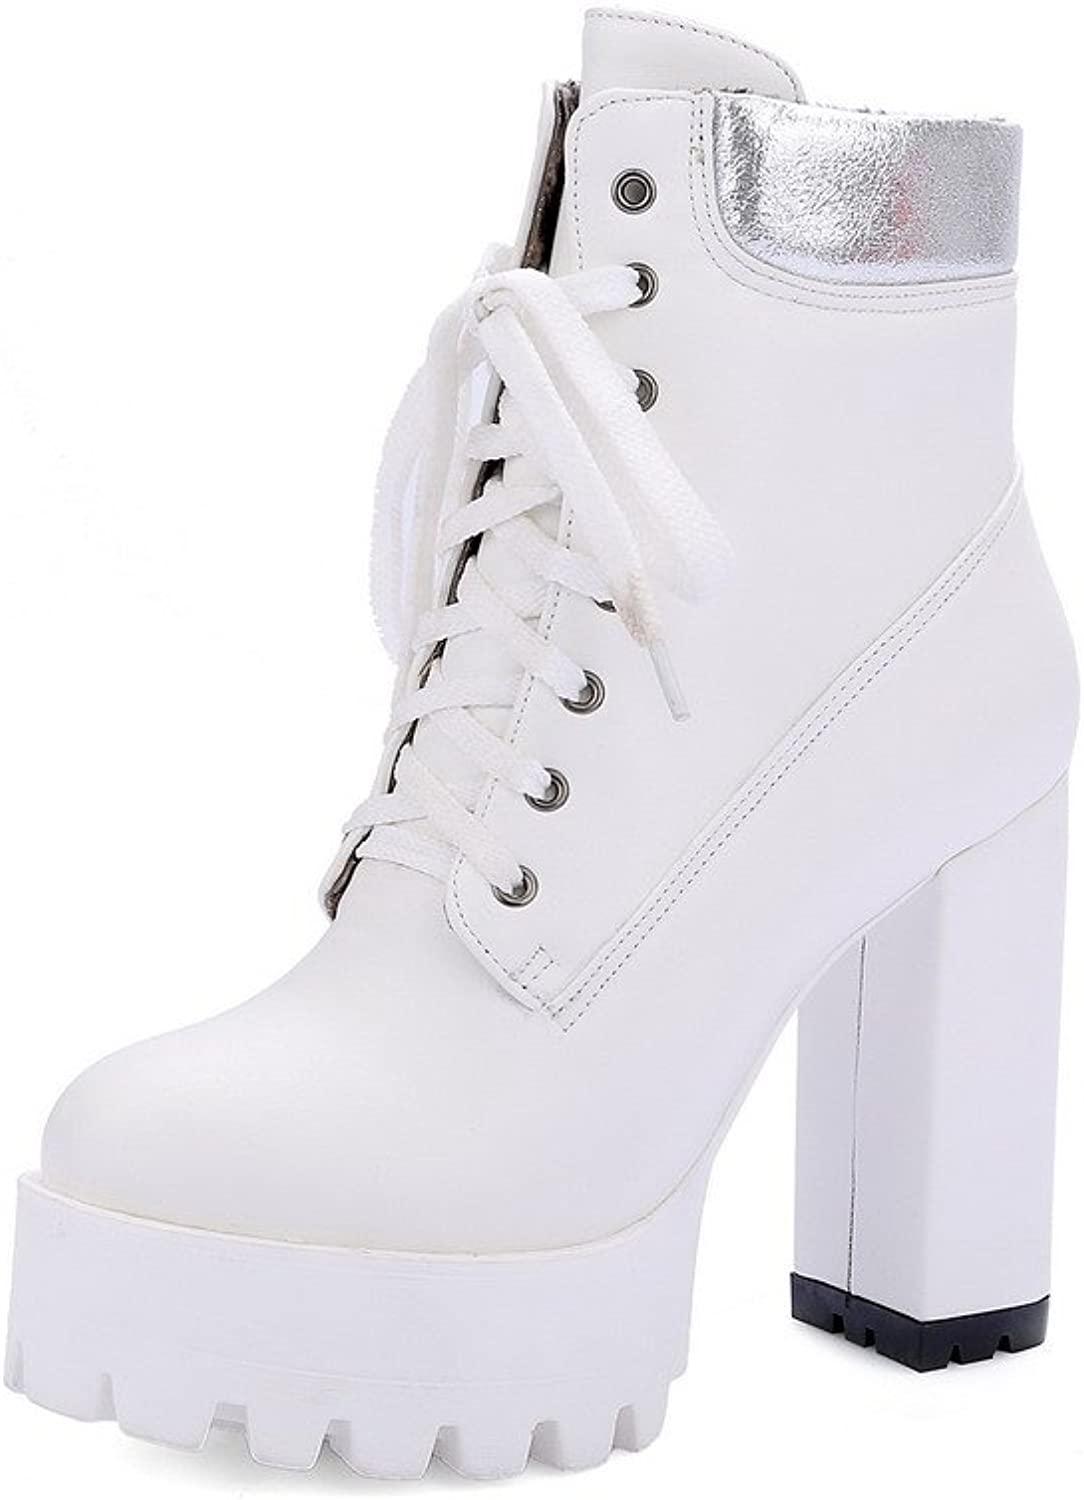 AmoonyFashion Women's PU Low-top Assorted color Lace-up High-Heels Boots